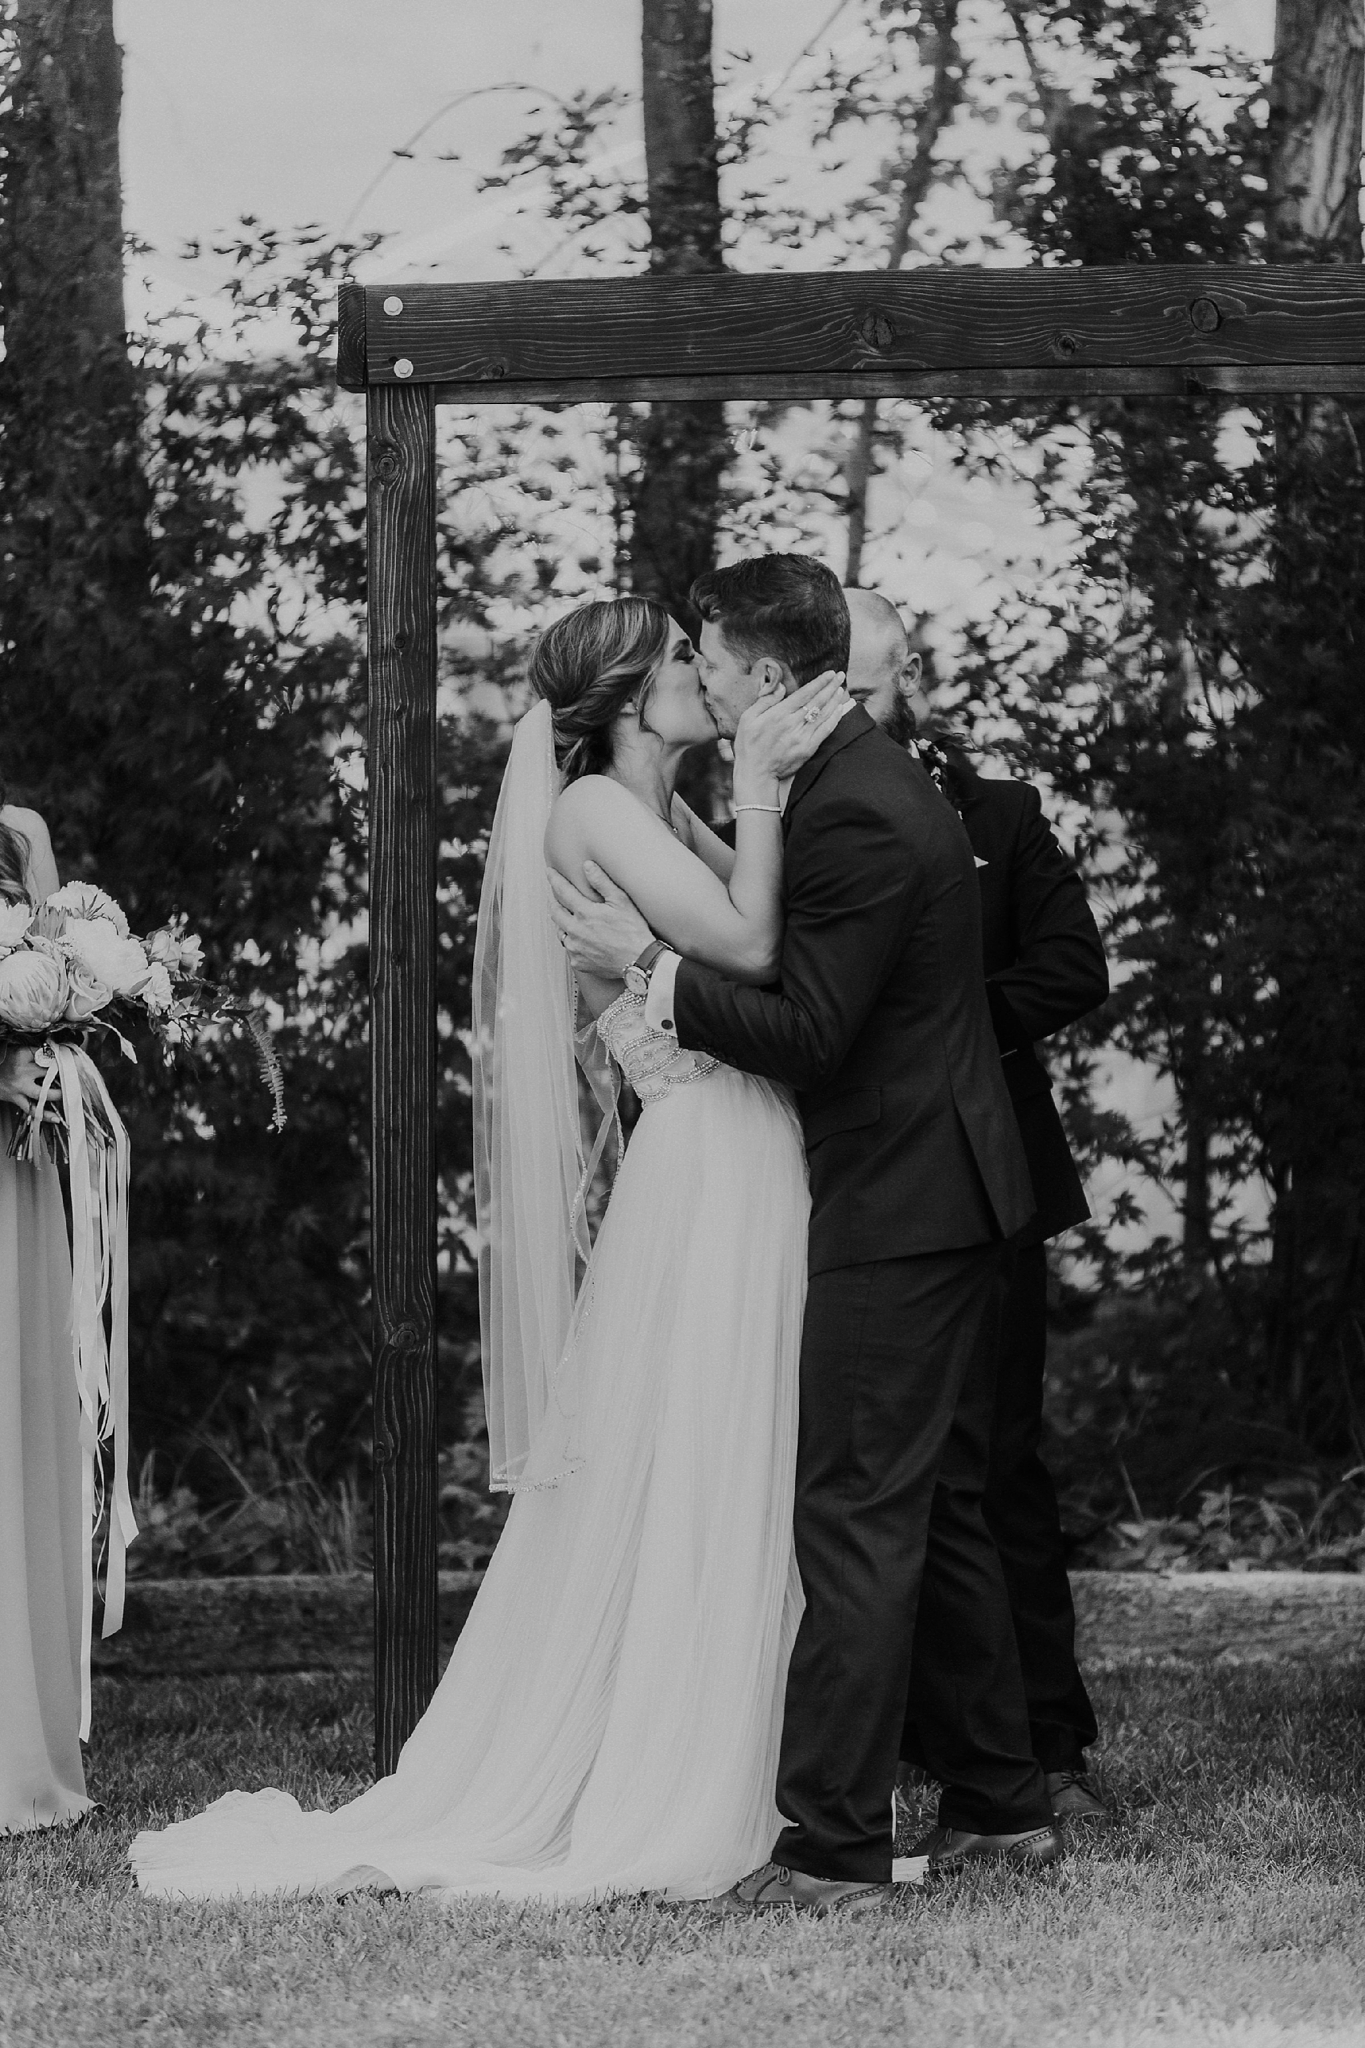 Alicia+lucia+photography+-+albuquerque+wedding+photographer+-+santa+fe+wedding+photography+-+new+mexico+wedding+photographer+-+new+mexico+wedding+-+wedding+vows+-+writing+your+own+vows+-+wedding+inspo_0049.jpg